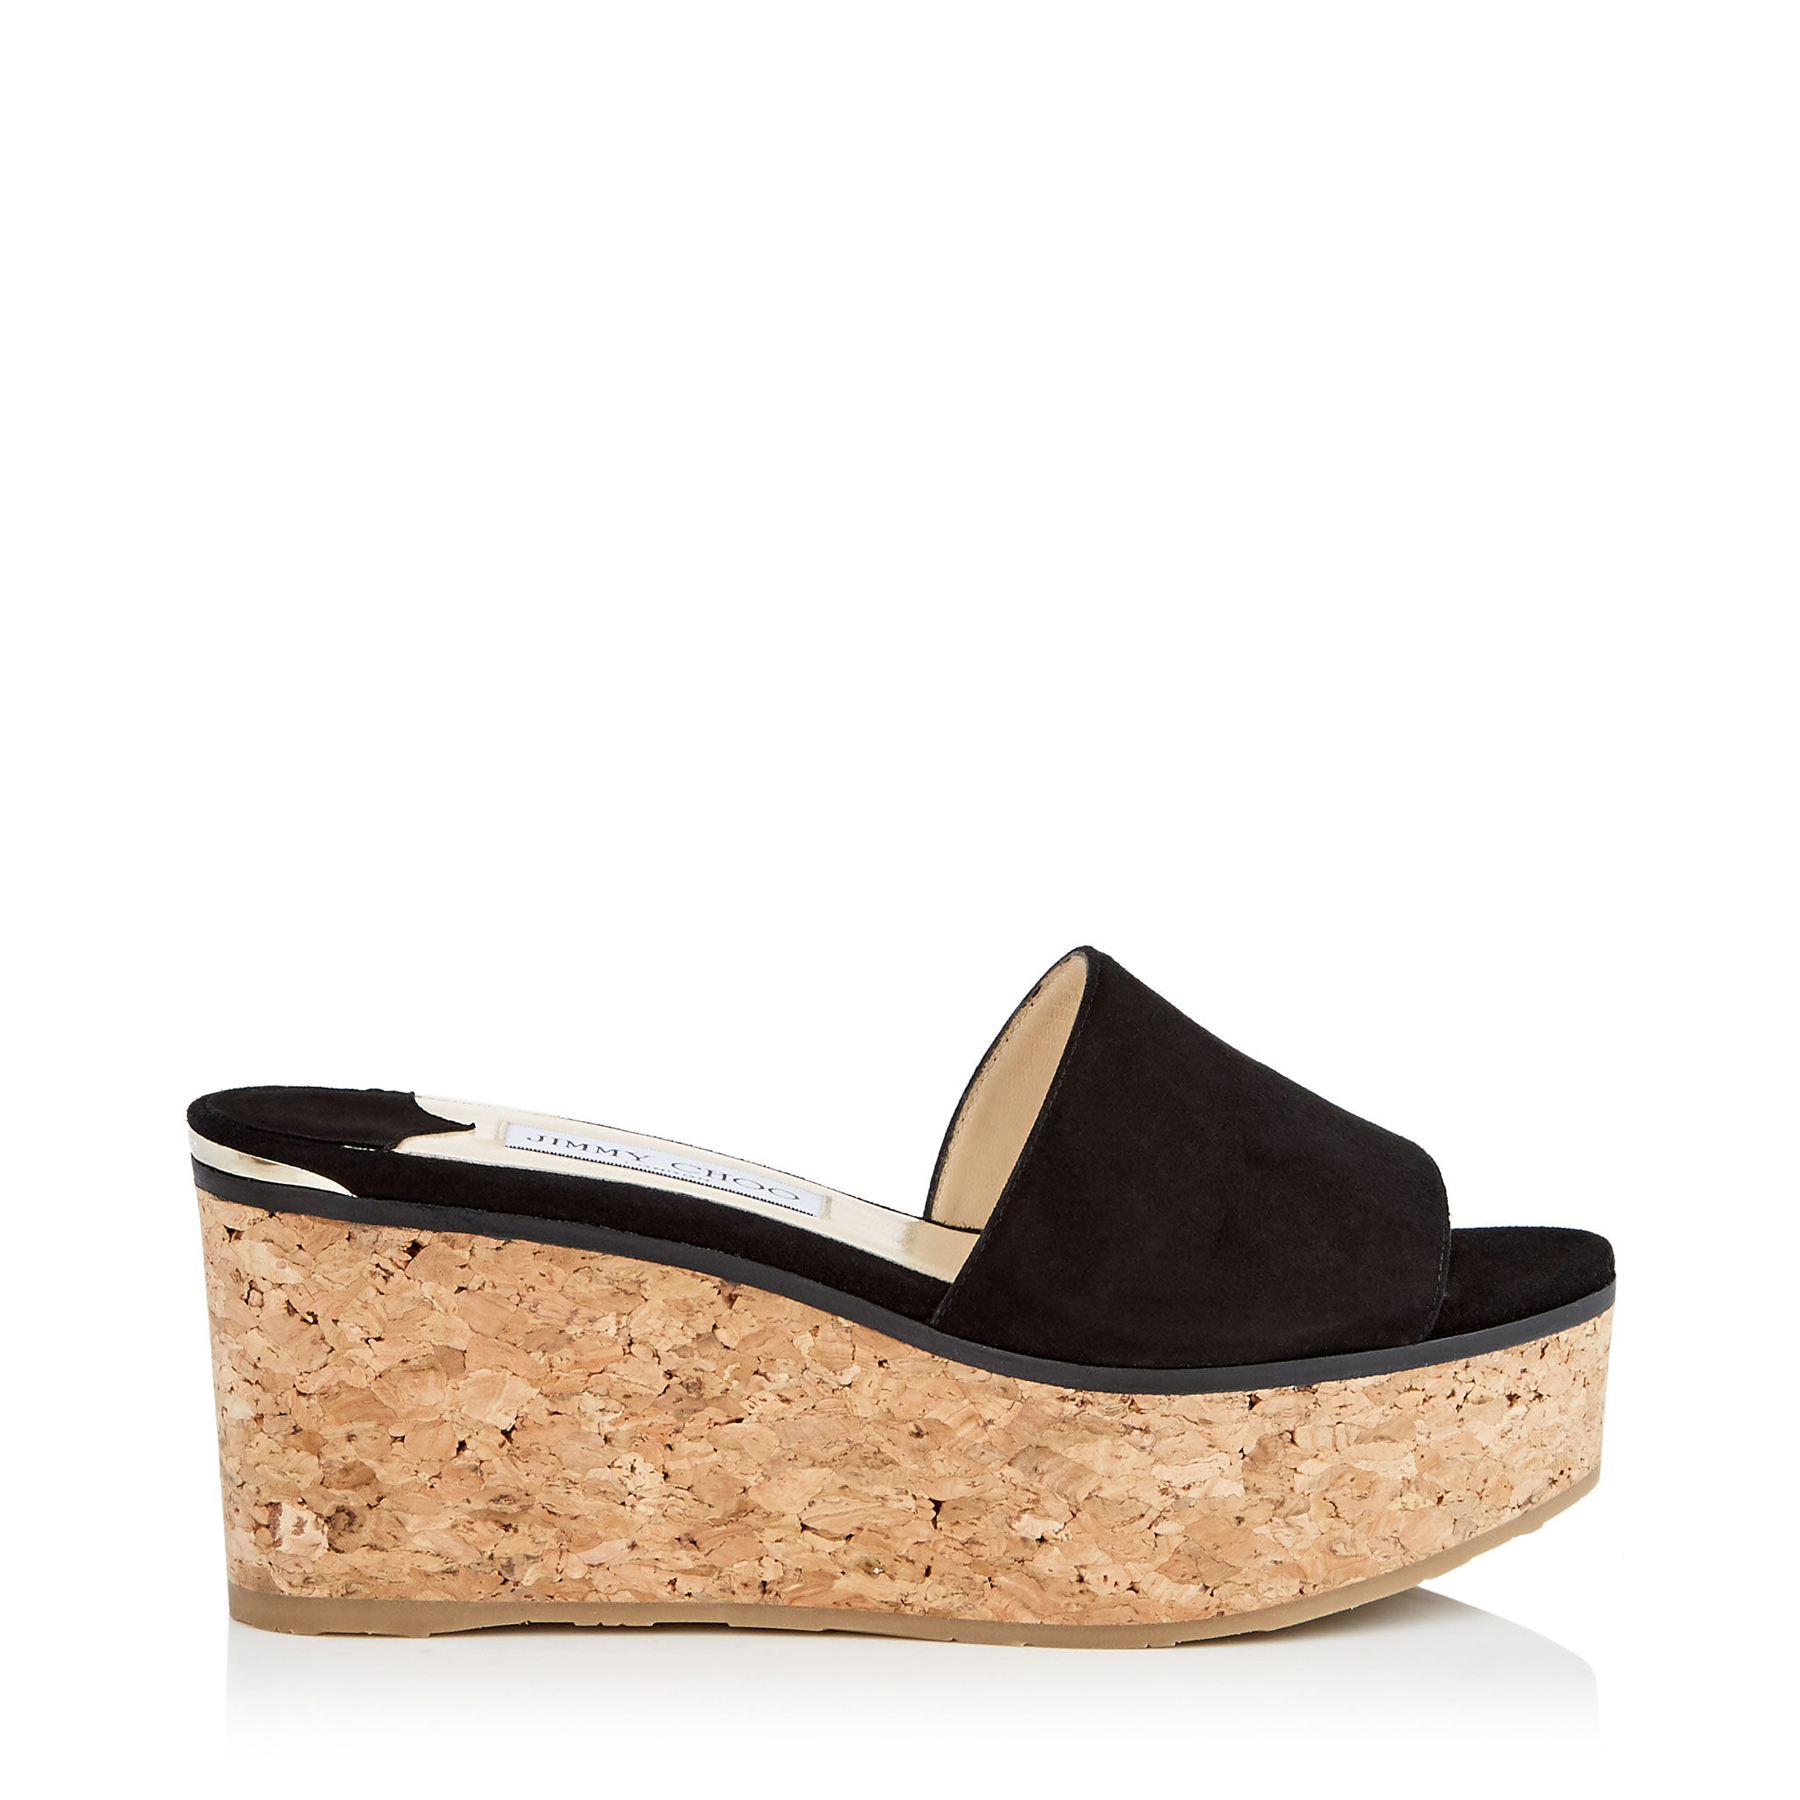 DEEDEE 80 Black Suede Sandal Wedges by Jimmy Choo